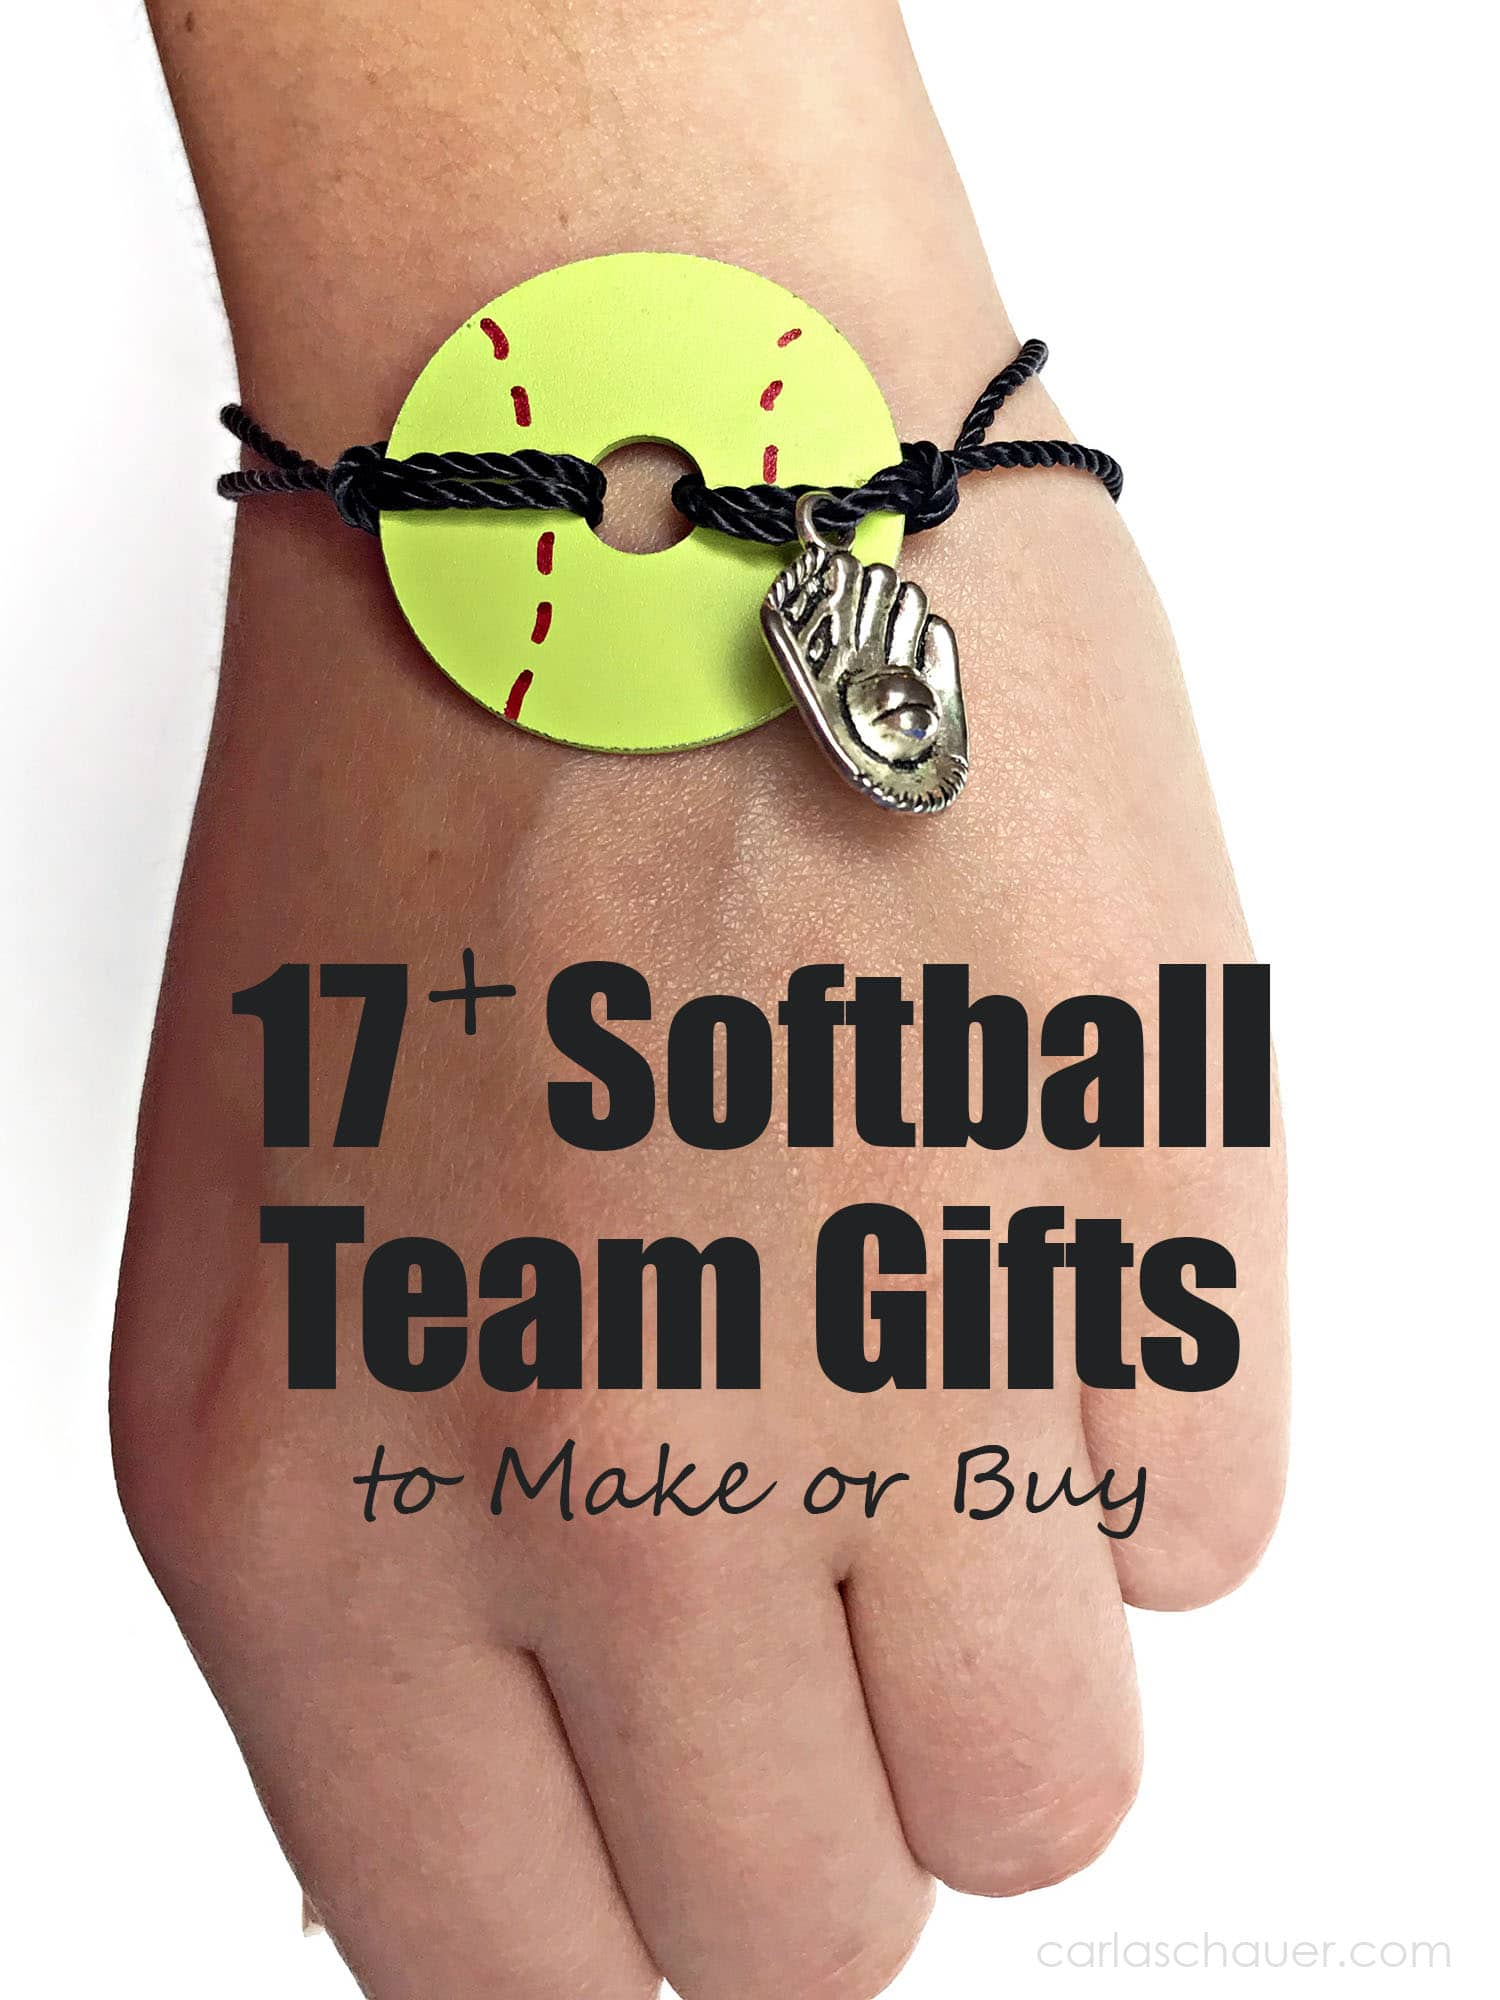 Photo of Softball Washer Bracelet on wrist with text for pinning.